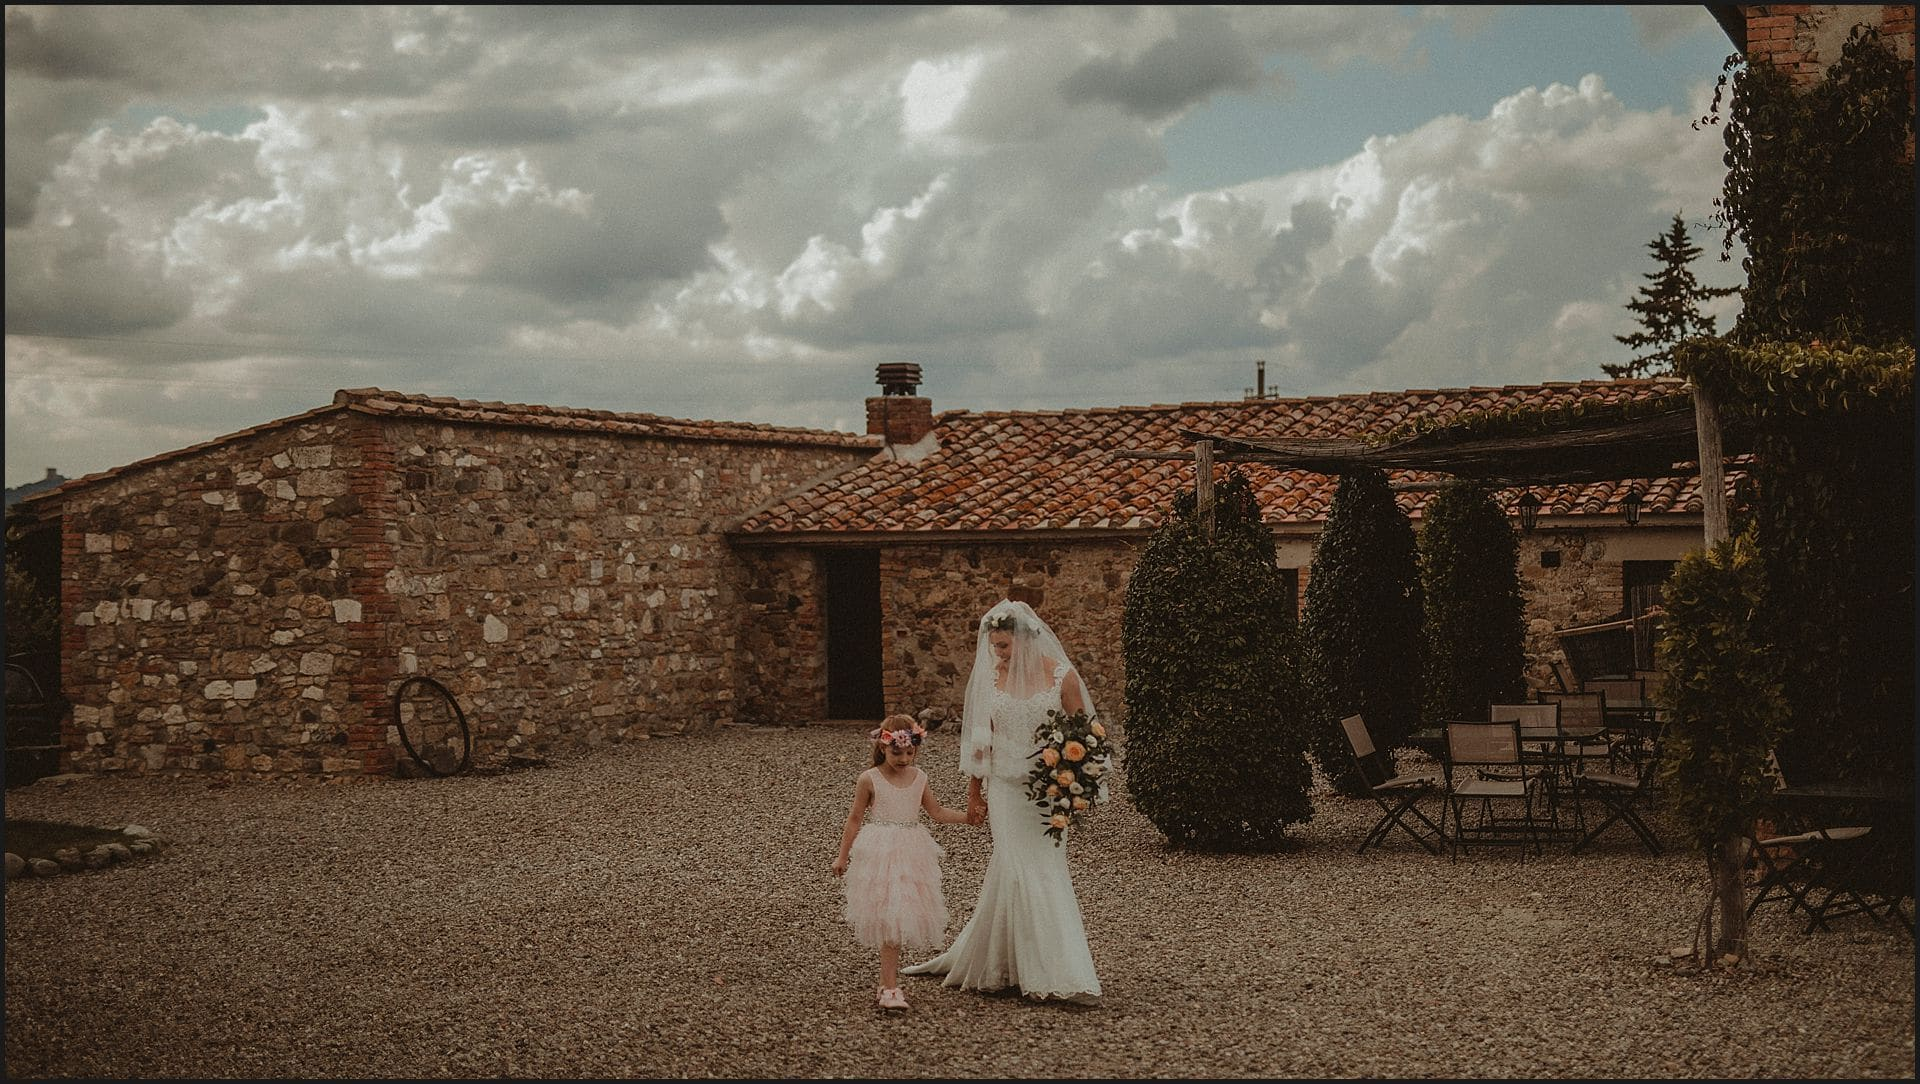 bride, daughter, intimate wedding, wedding dress, locanda in tuscany, val d'orcia, wedding in italy, bridemaid